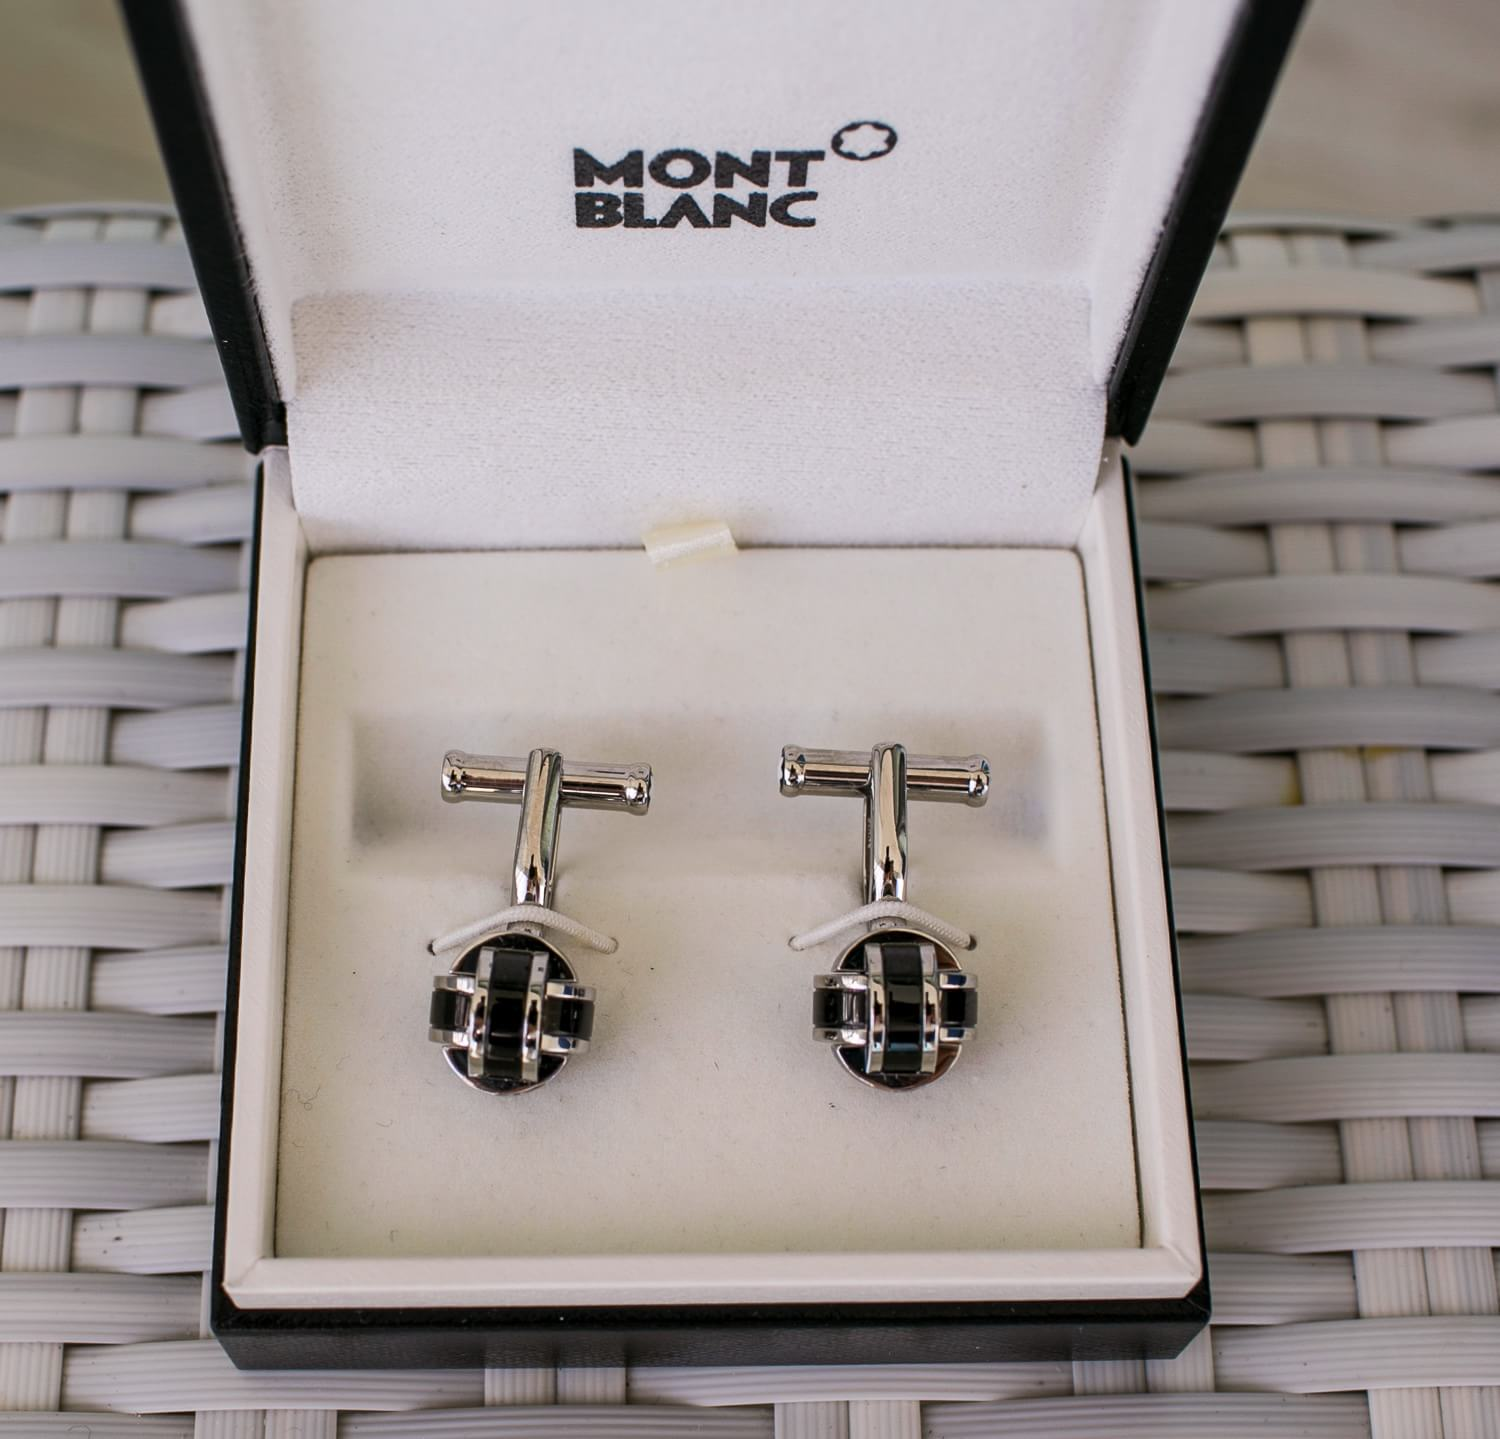 Cufflinks for wedding in cancun